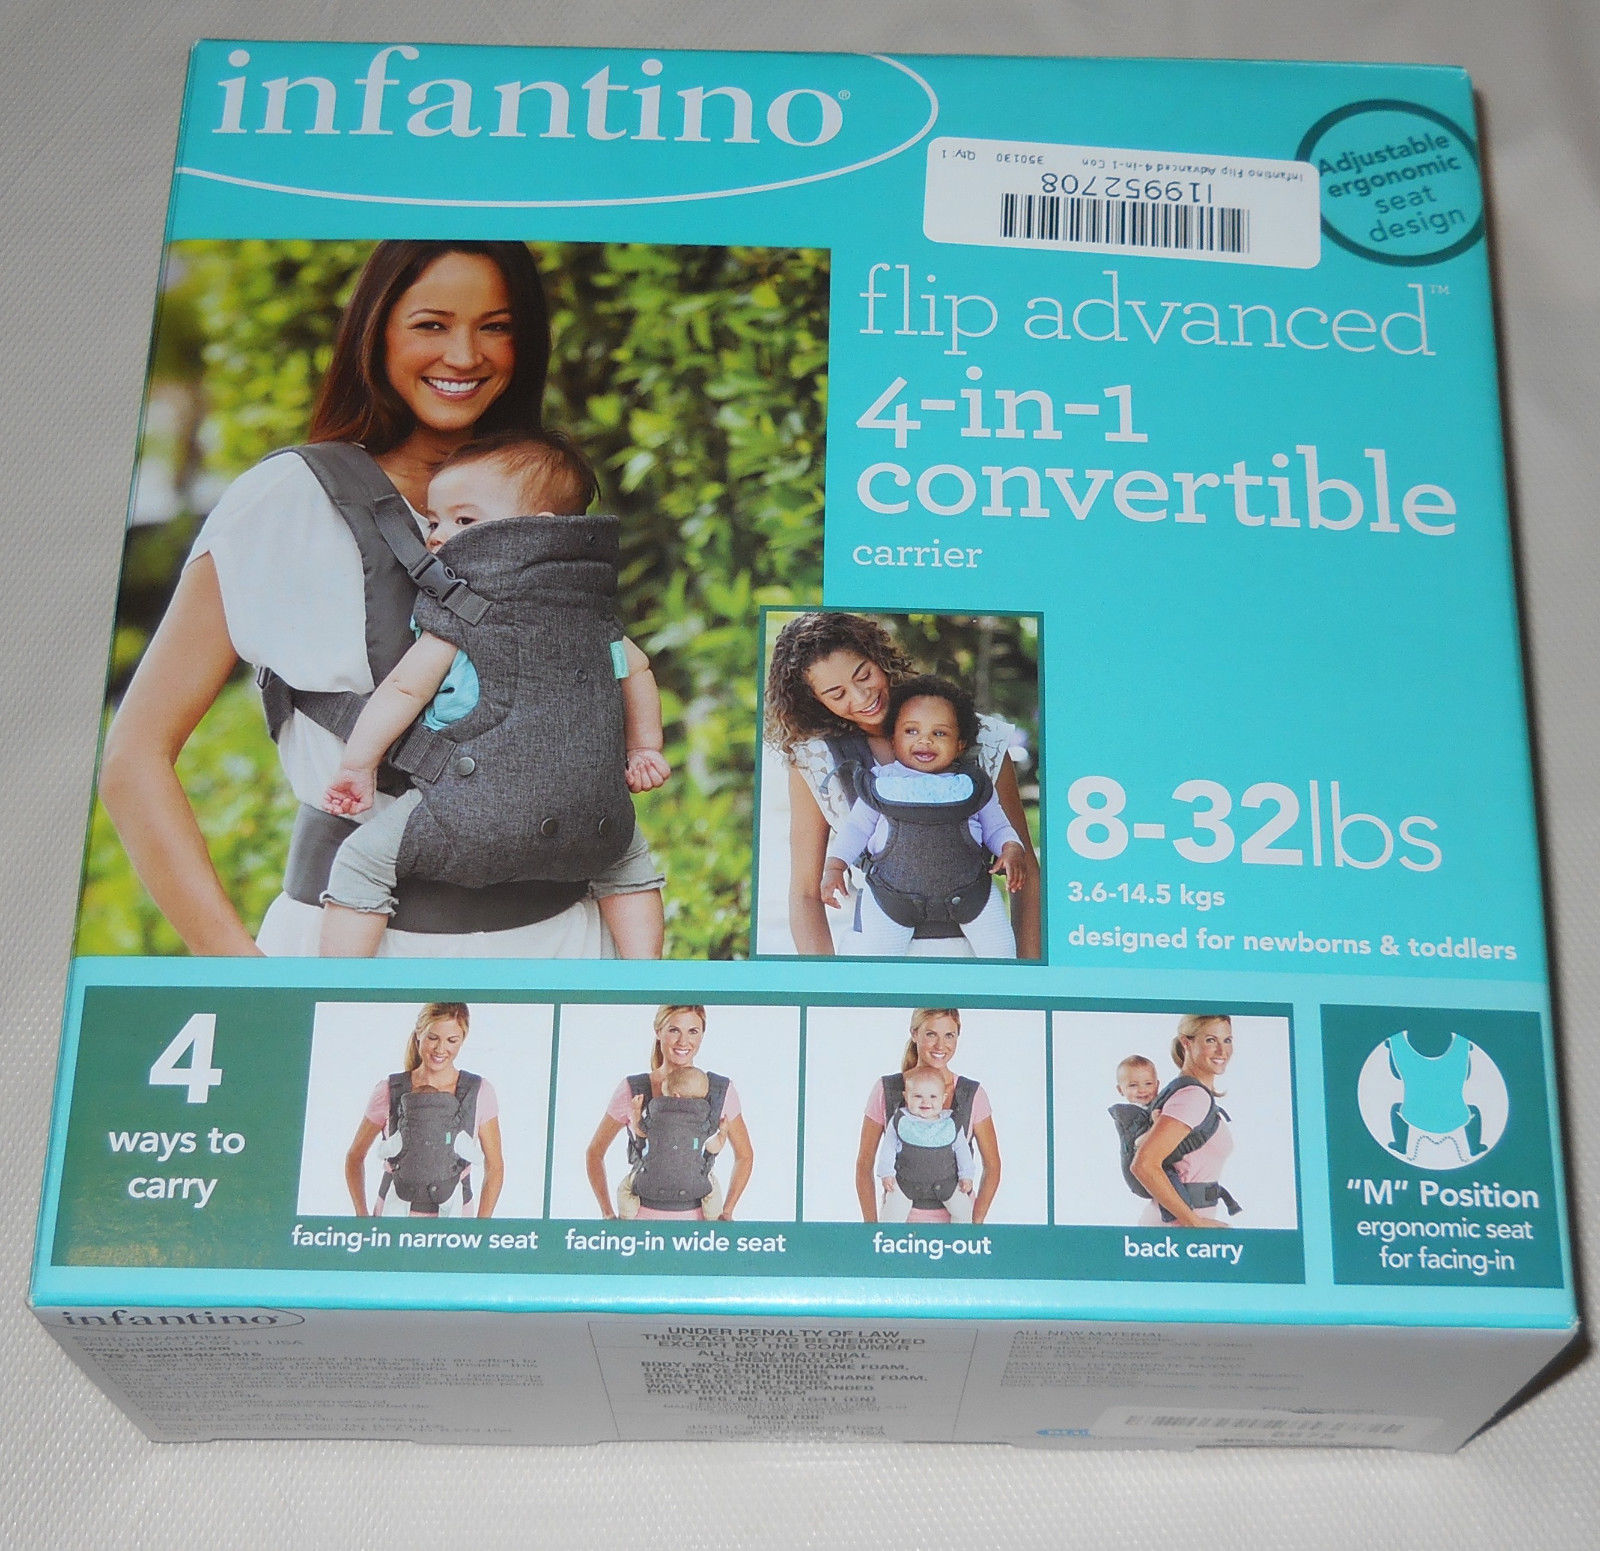 Baby Carrier Convertible Flip Advanced 4 1 Infant Newborn Toddler Seat Gift New